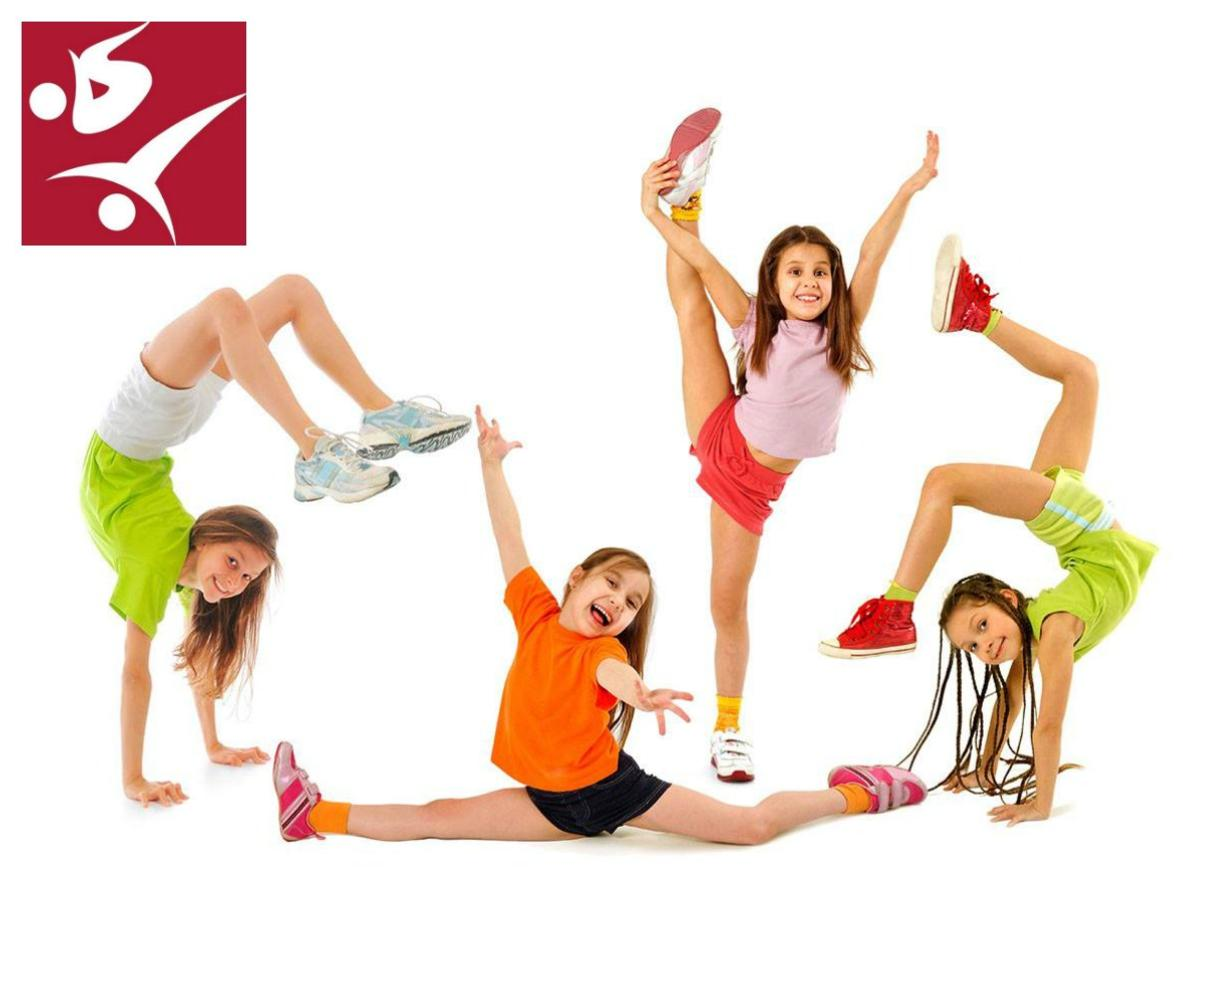 One 8-Week Session of Gymnastics or Tumbling Classes at Emilia's Acrobatic and Gymnastic Club